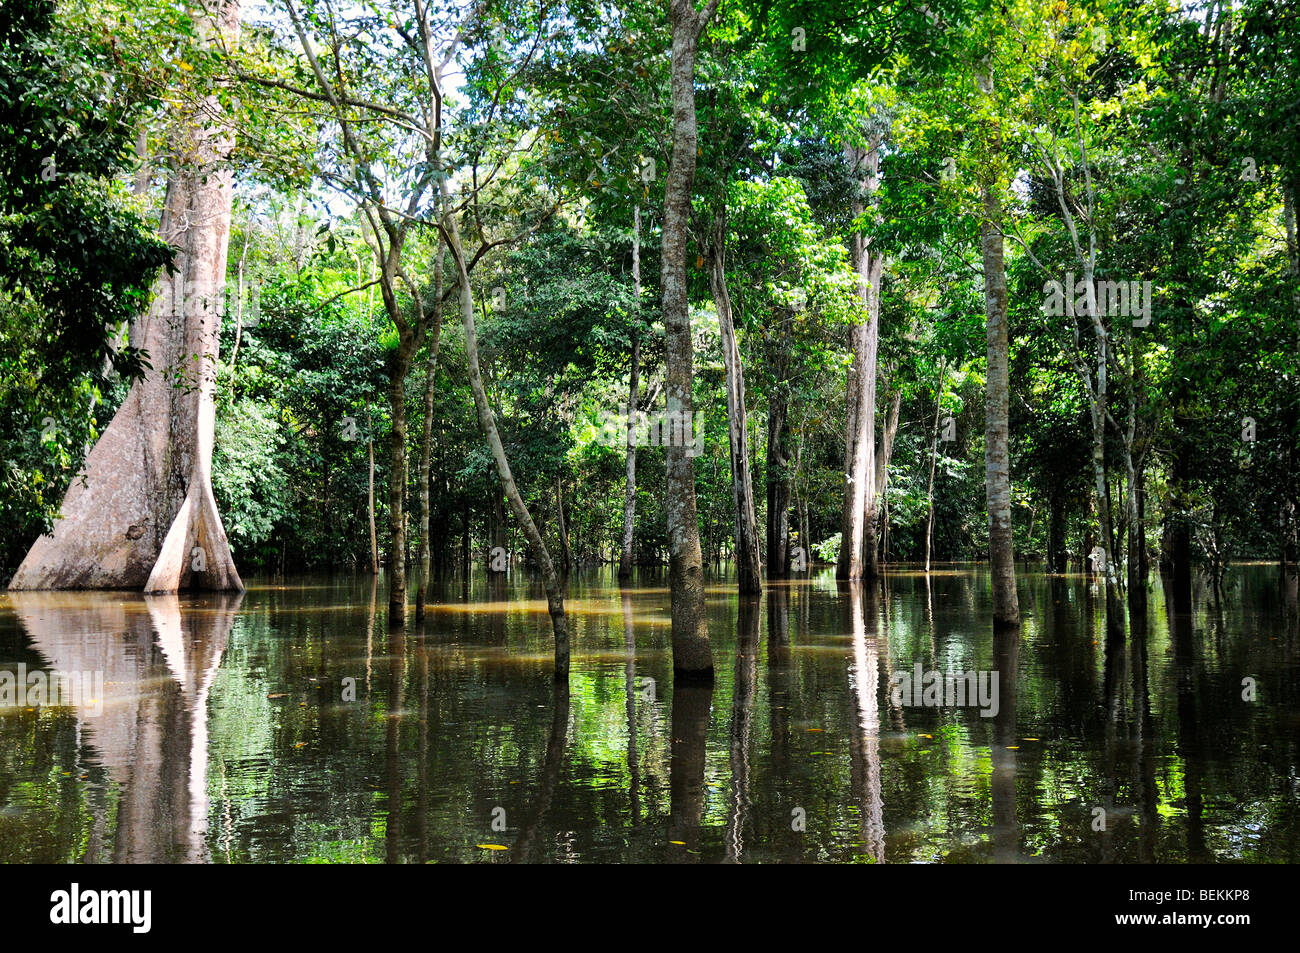 Amazon river forest rainforest during the high water season. - Stock Image